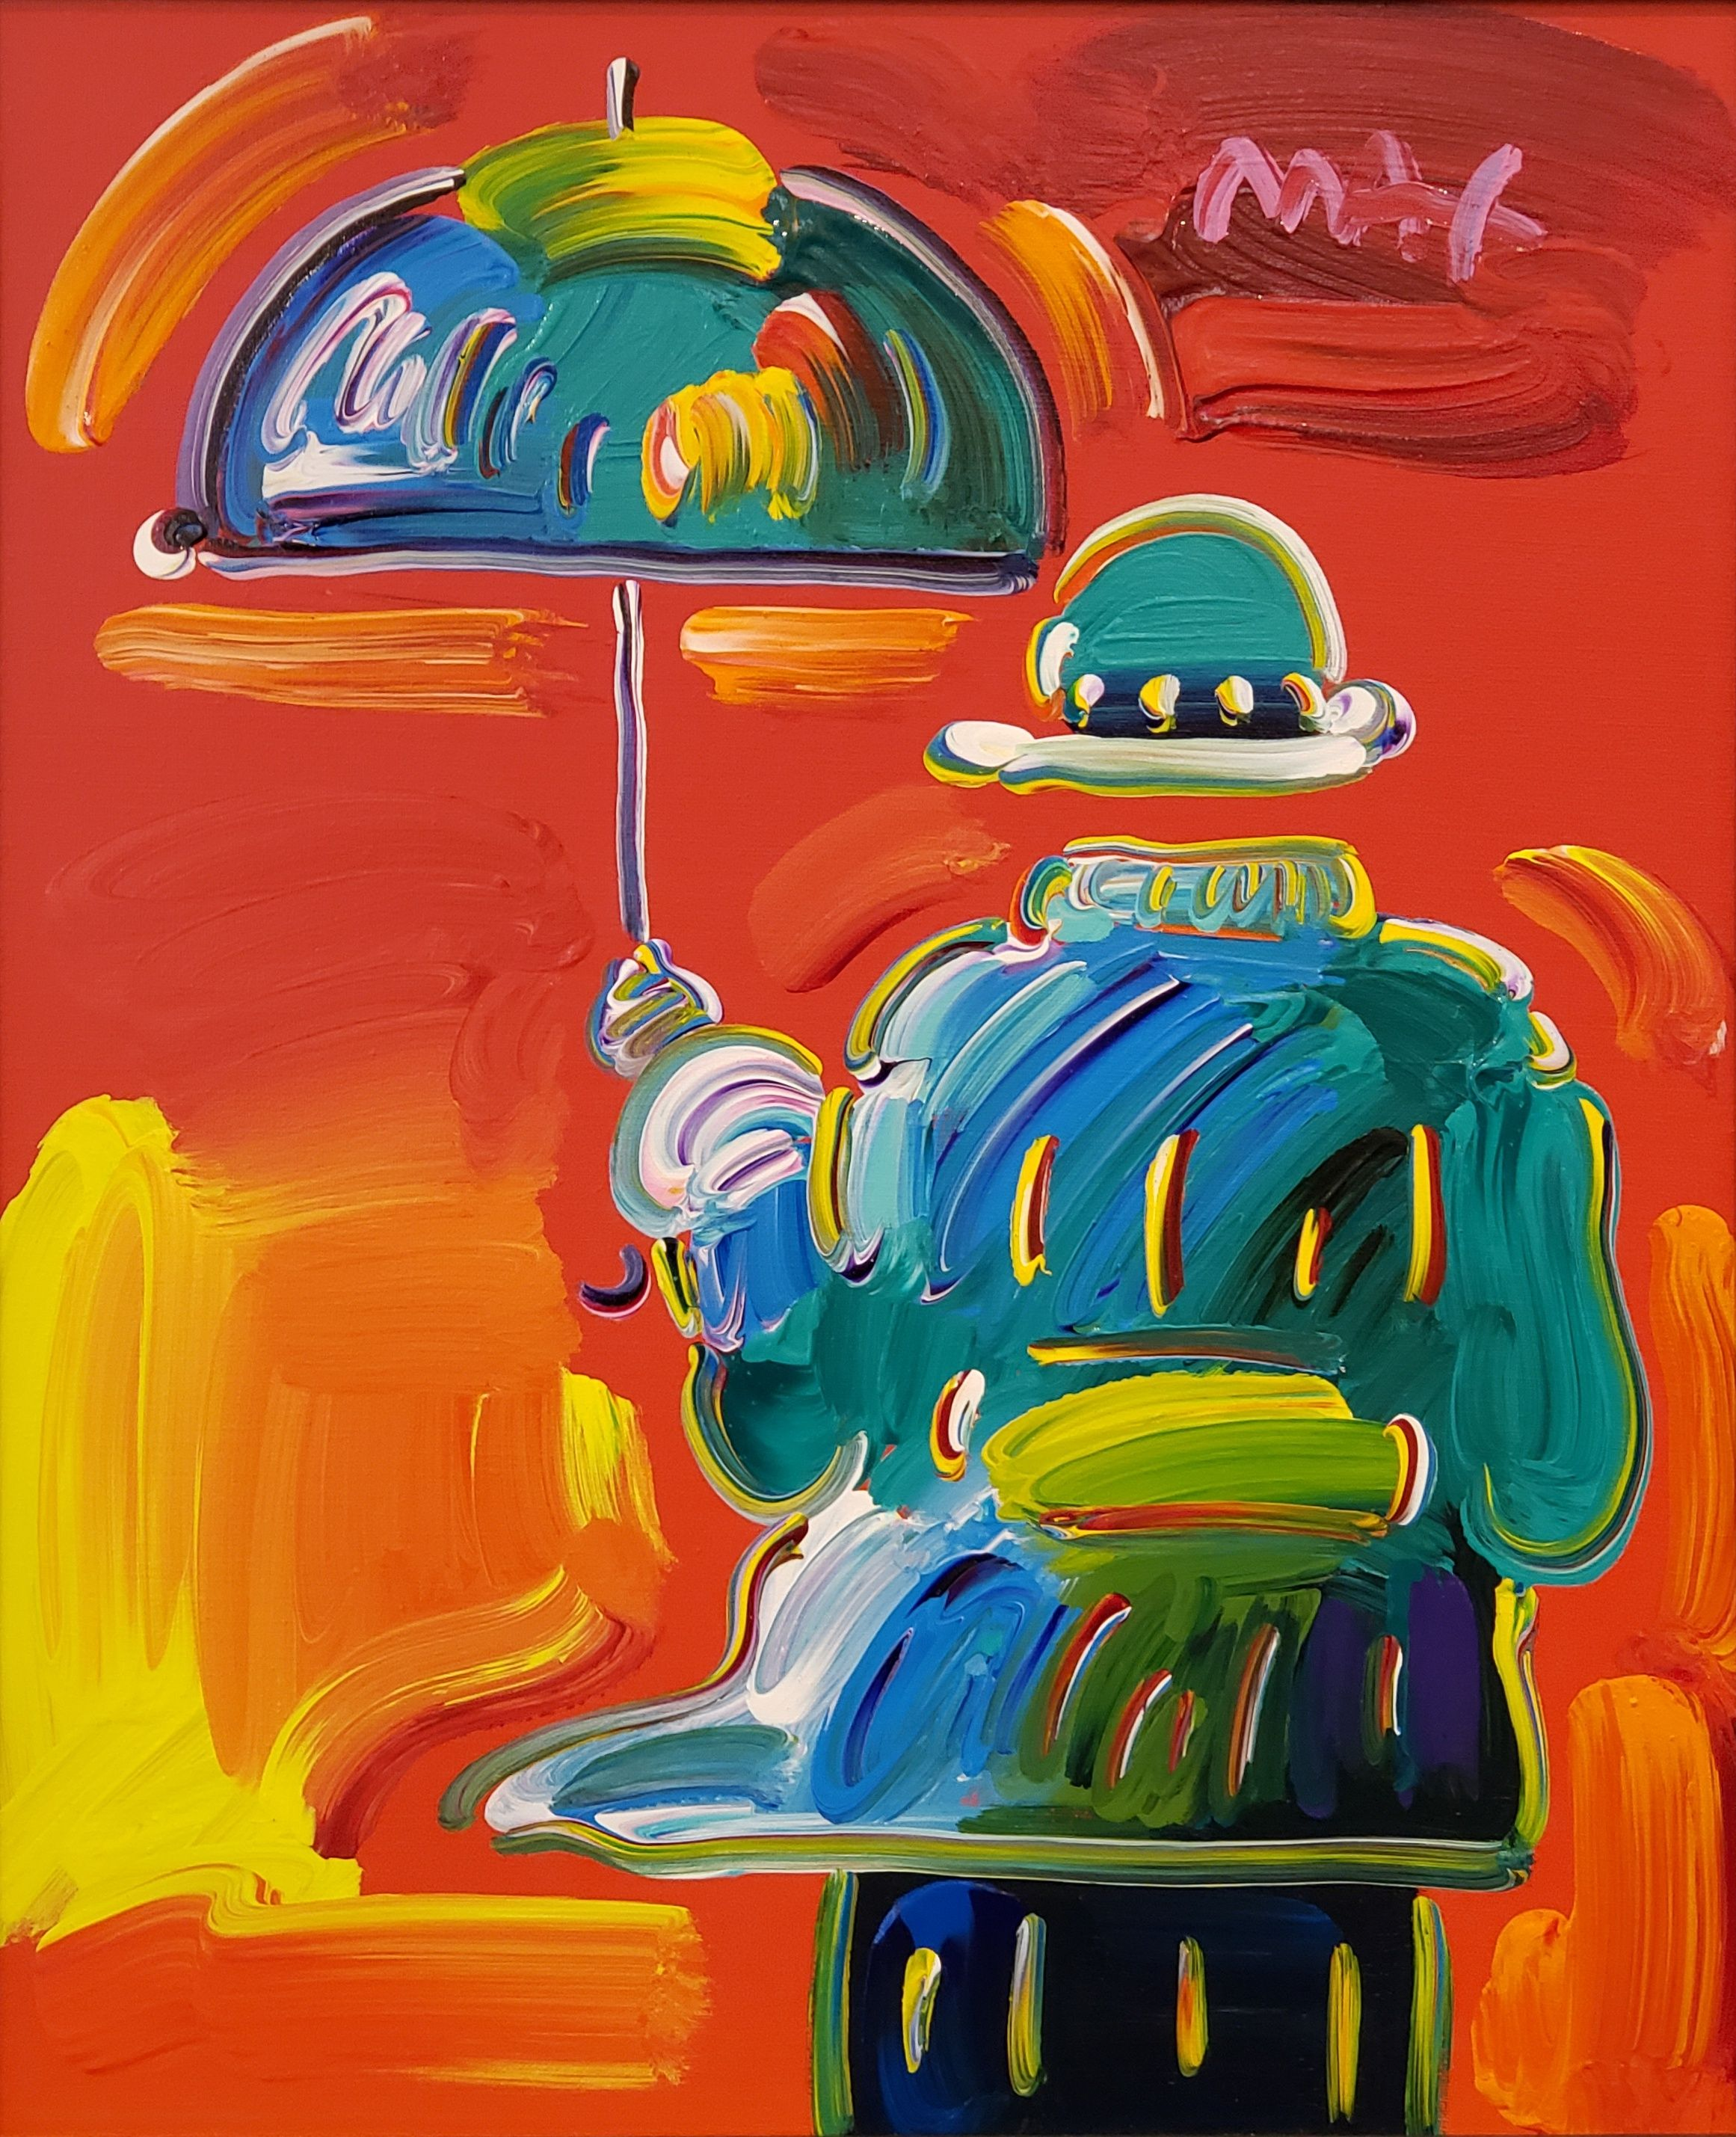 Peter Max - Umbrella Man on Blend; Painting; Original acrylic on canvas; Signed; Pop Art; from The Studio of Peter Max; Pop Art; Off The Wall Gallery Houston.